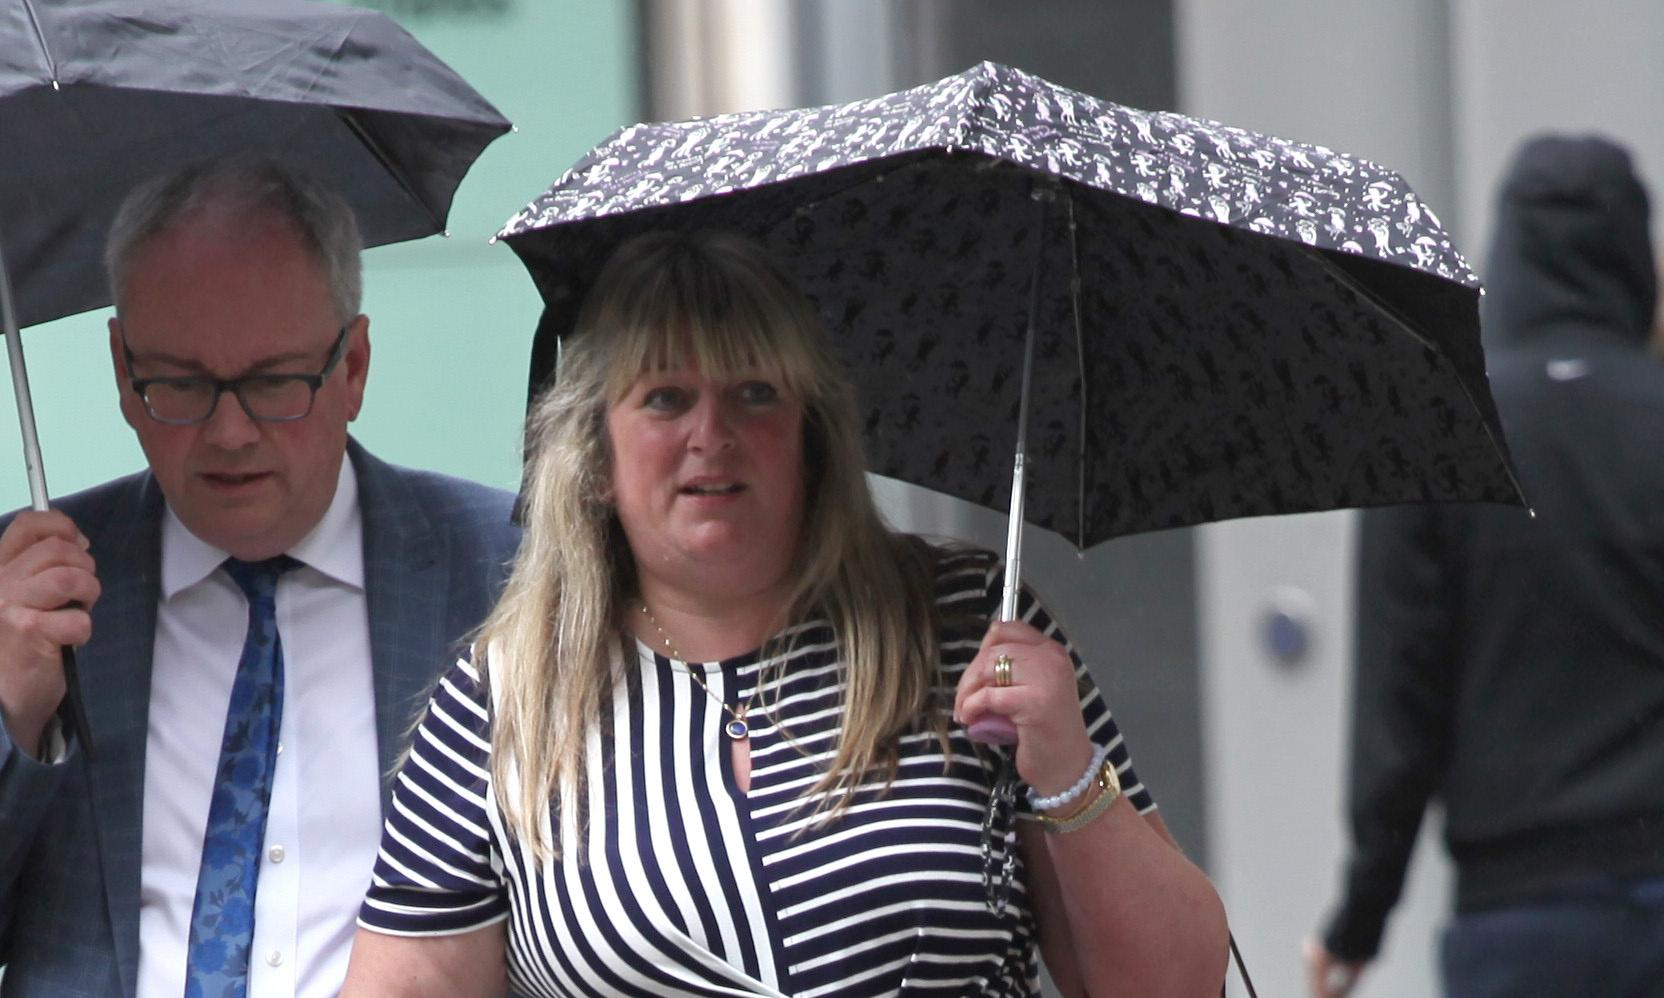 Stepsister wins legal battle over which parent died first